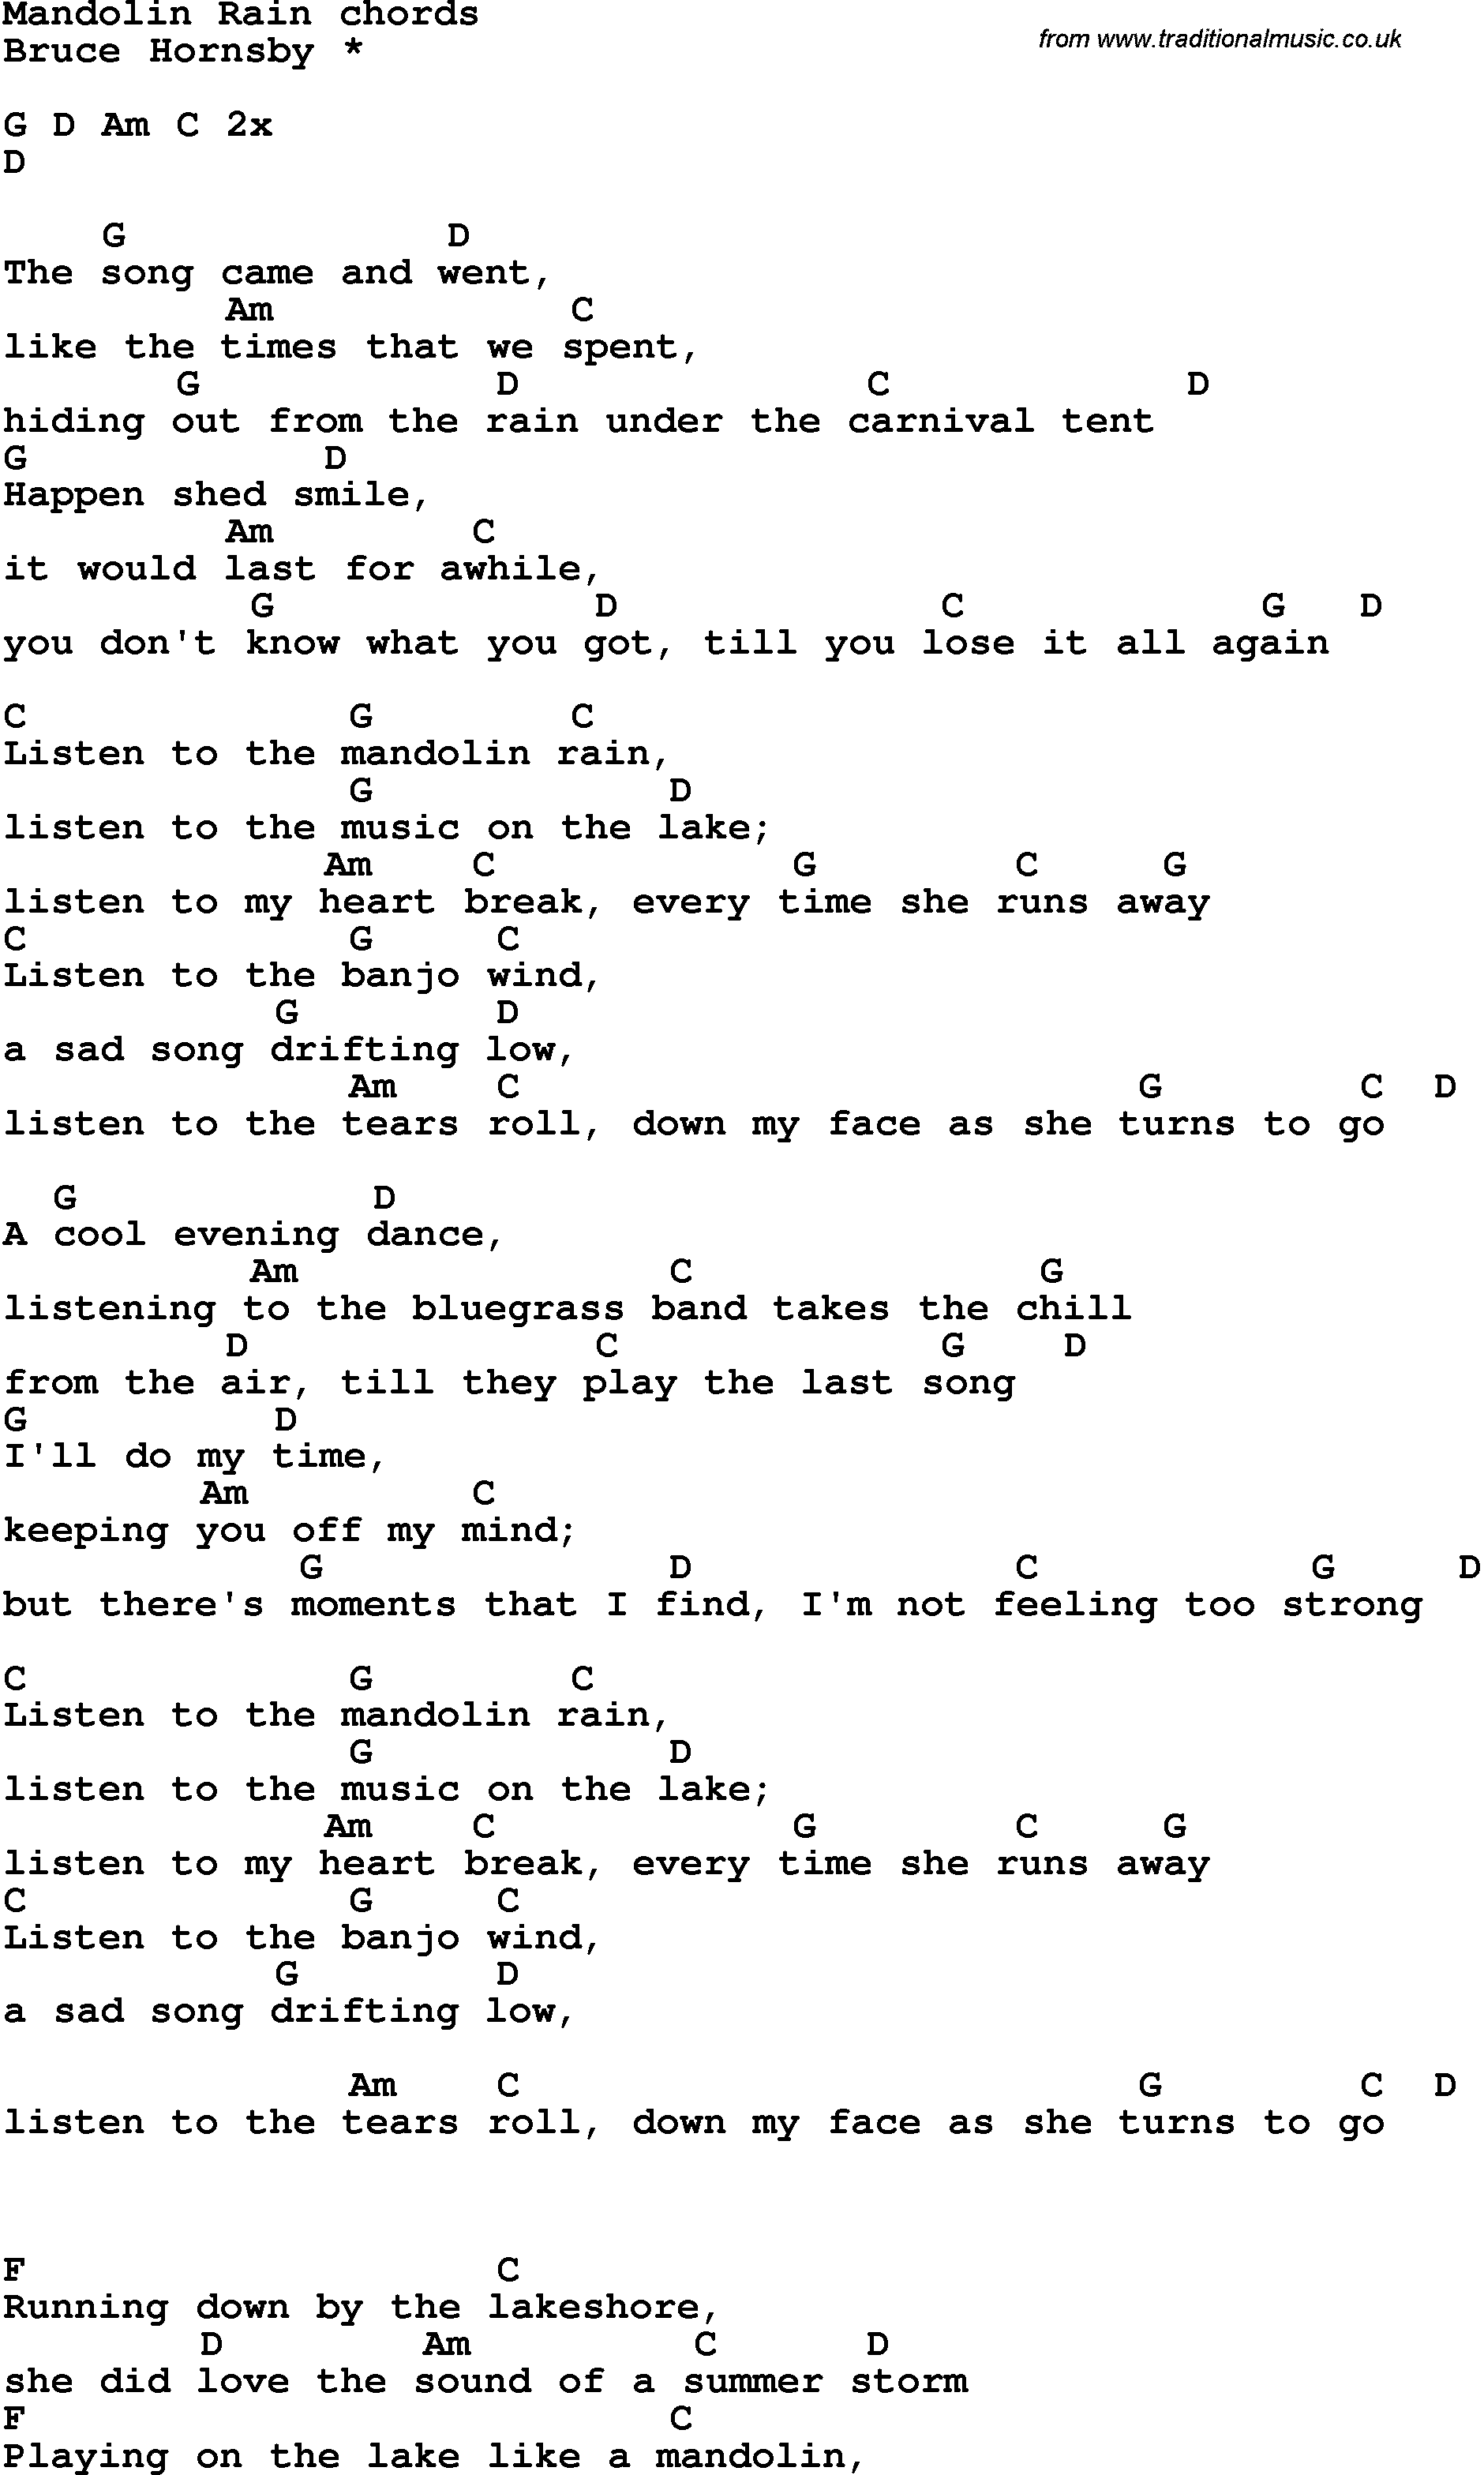 Song lyrics with guitar chords for mandolin rain song lyrics with guitar chords for mandolin rain hexwebz Choice Image